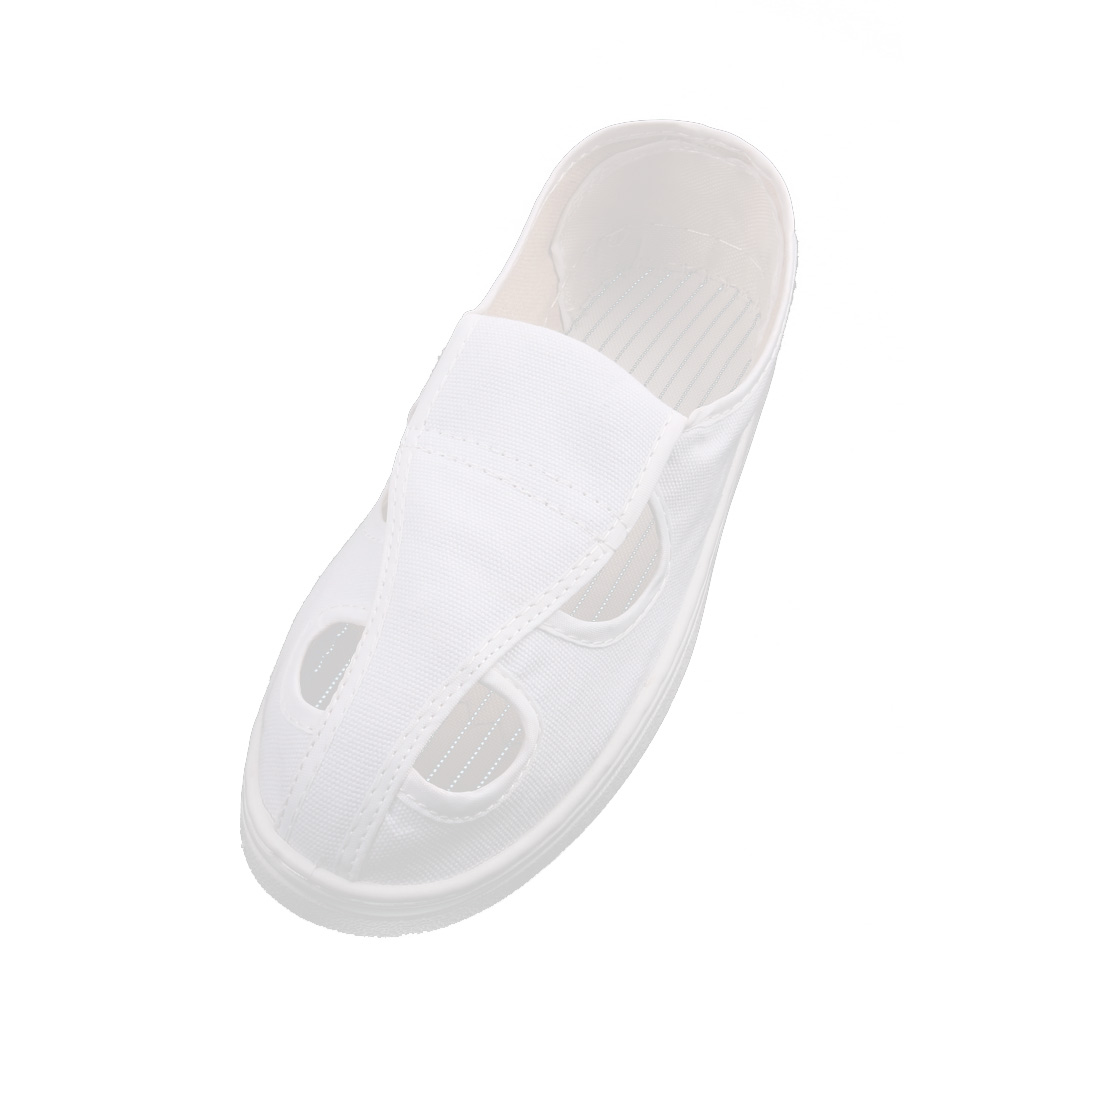 US5.5 UK3.5 EU35 PU Soft Bottom Nonslip Flat Sole Anti-static 4-Hole Canvas Shoes White